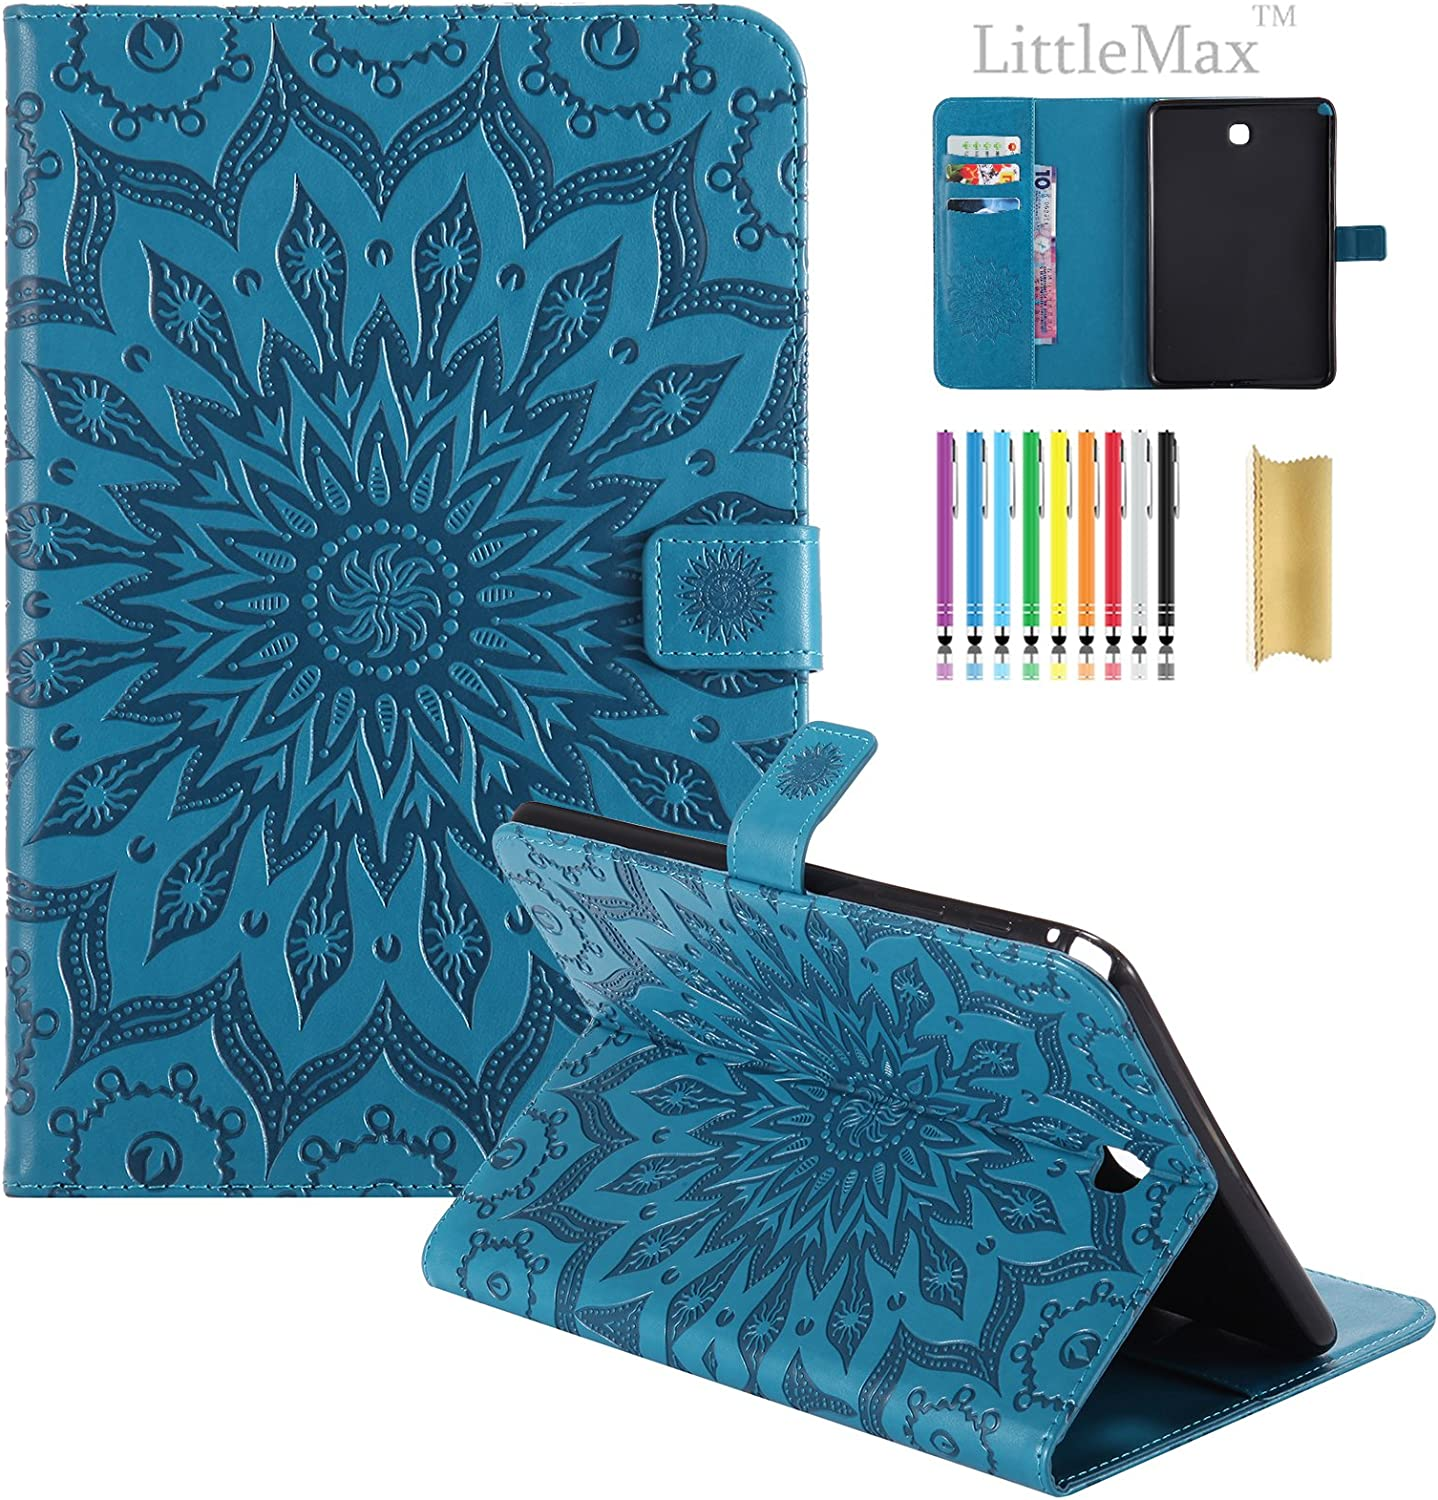 SM-T350 Case Galaxy Tab A 8.0 Case #2 Blue TM Embossed PU Leather Smart Wallet Case with LittleMax Auto Wake//Sleep Cute Cartoon Flip Stand Cover for Samsung Galaxy Tab A 8.0 Tablet